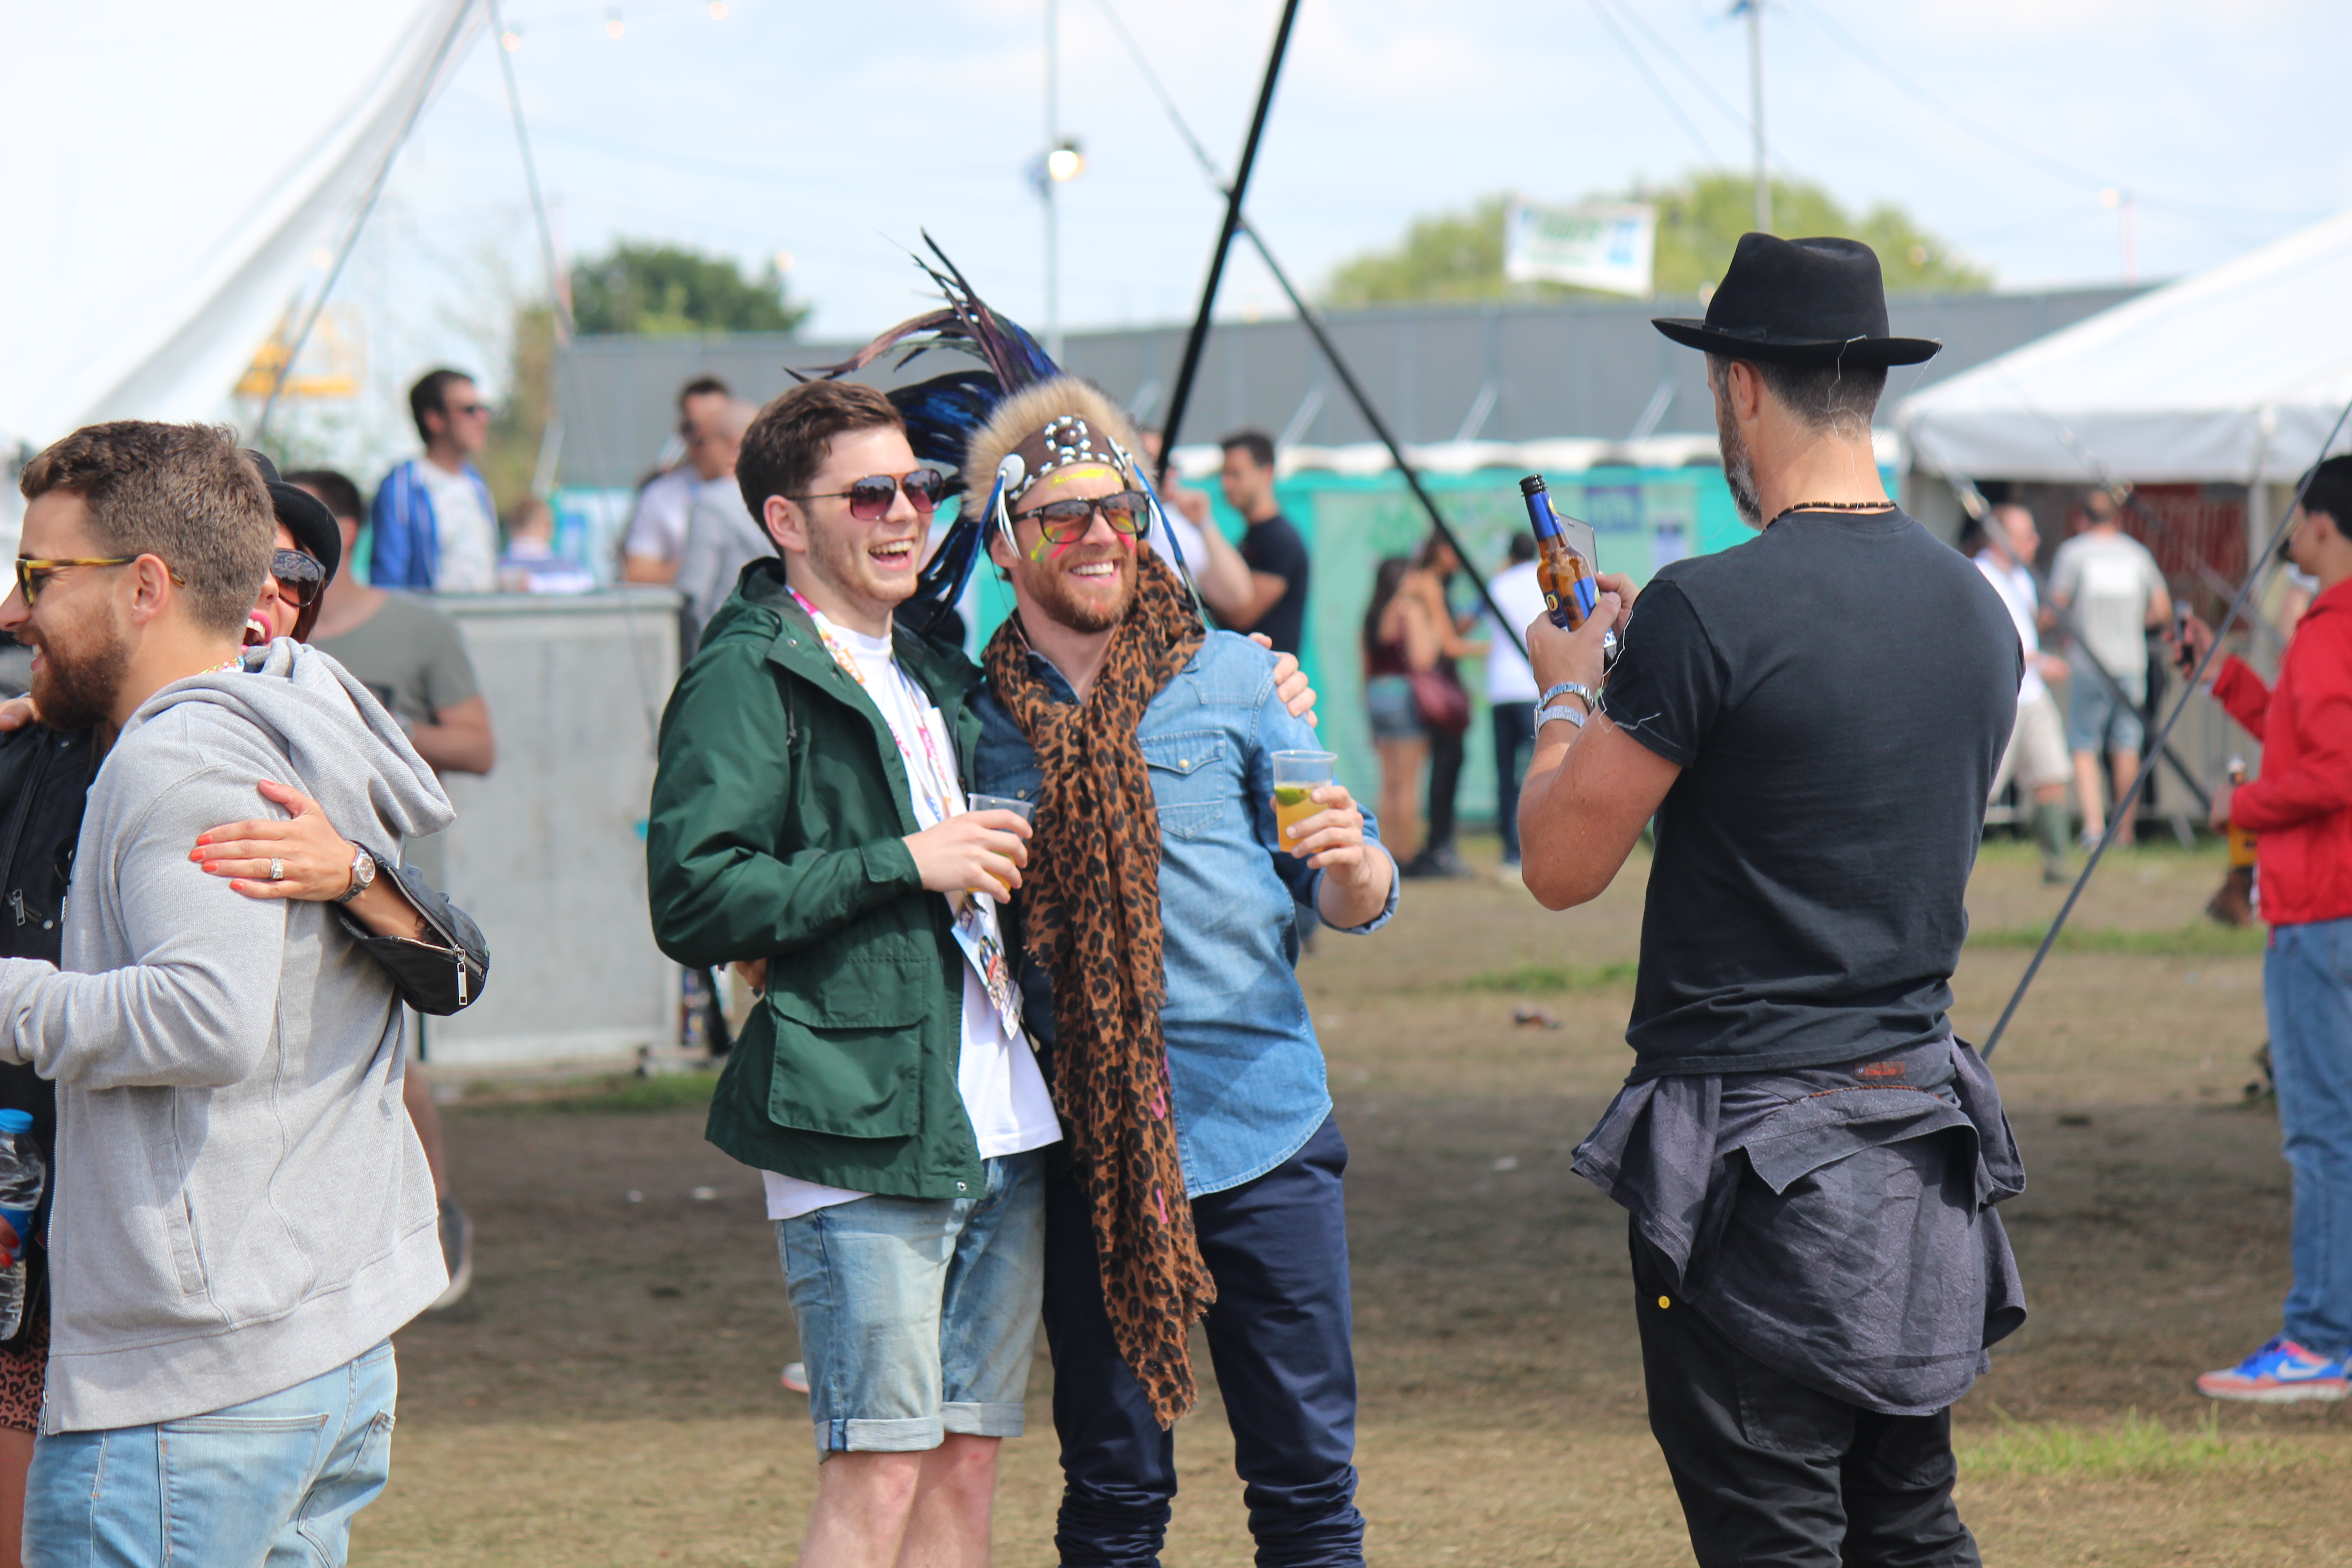 IMG_4966We Are FSTVL (credits Marley Beck)